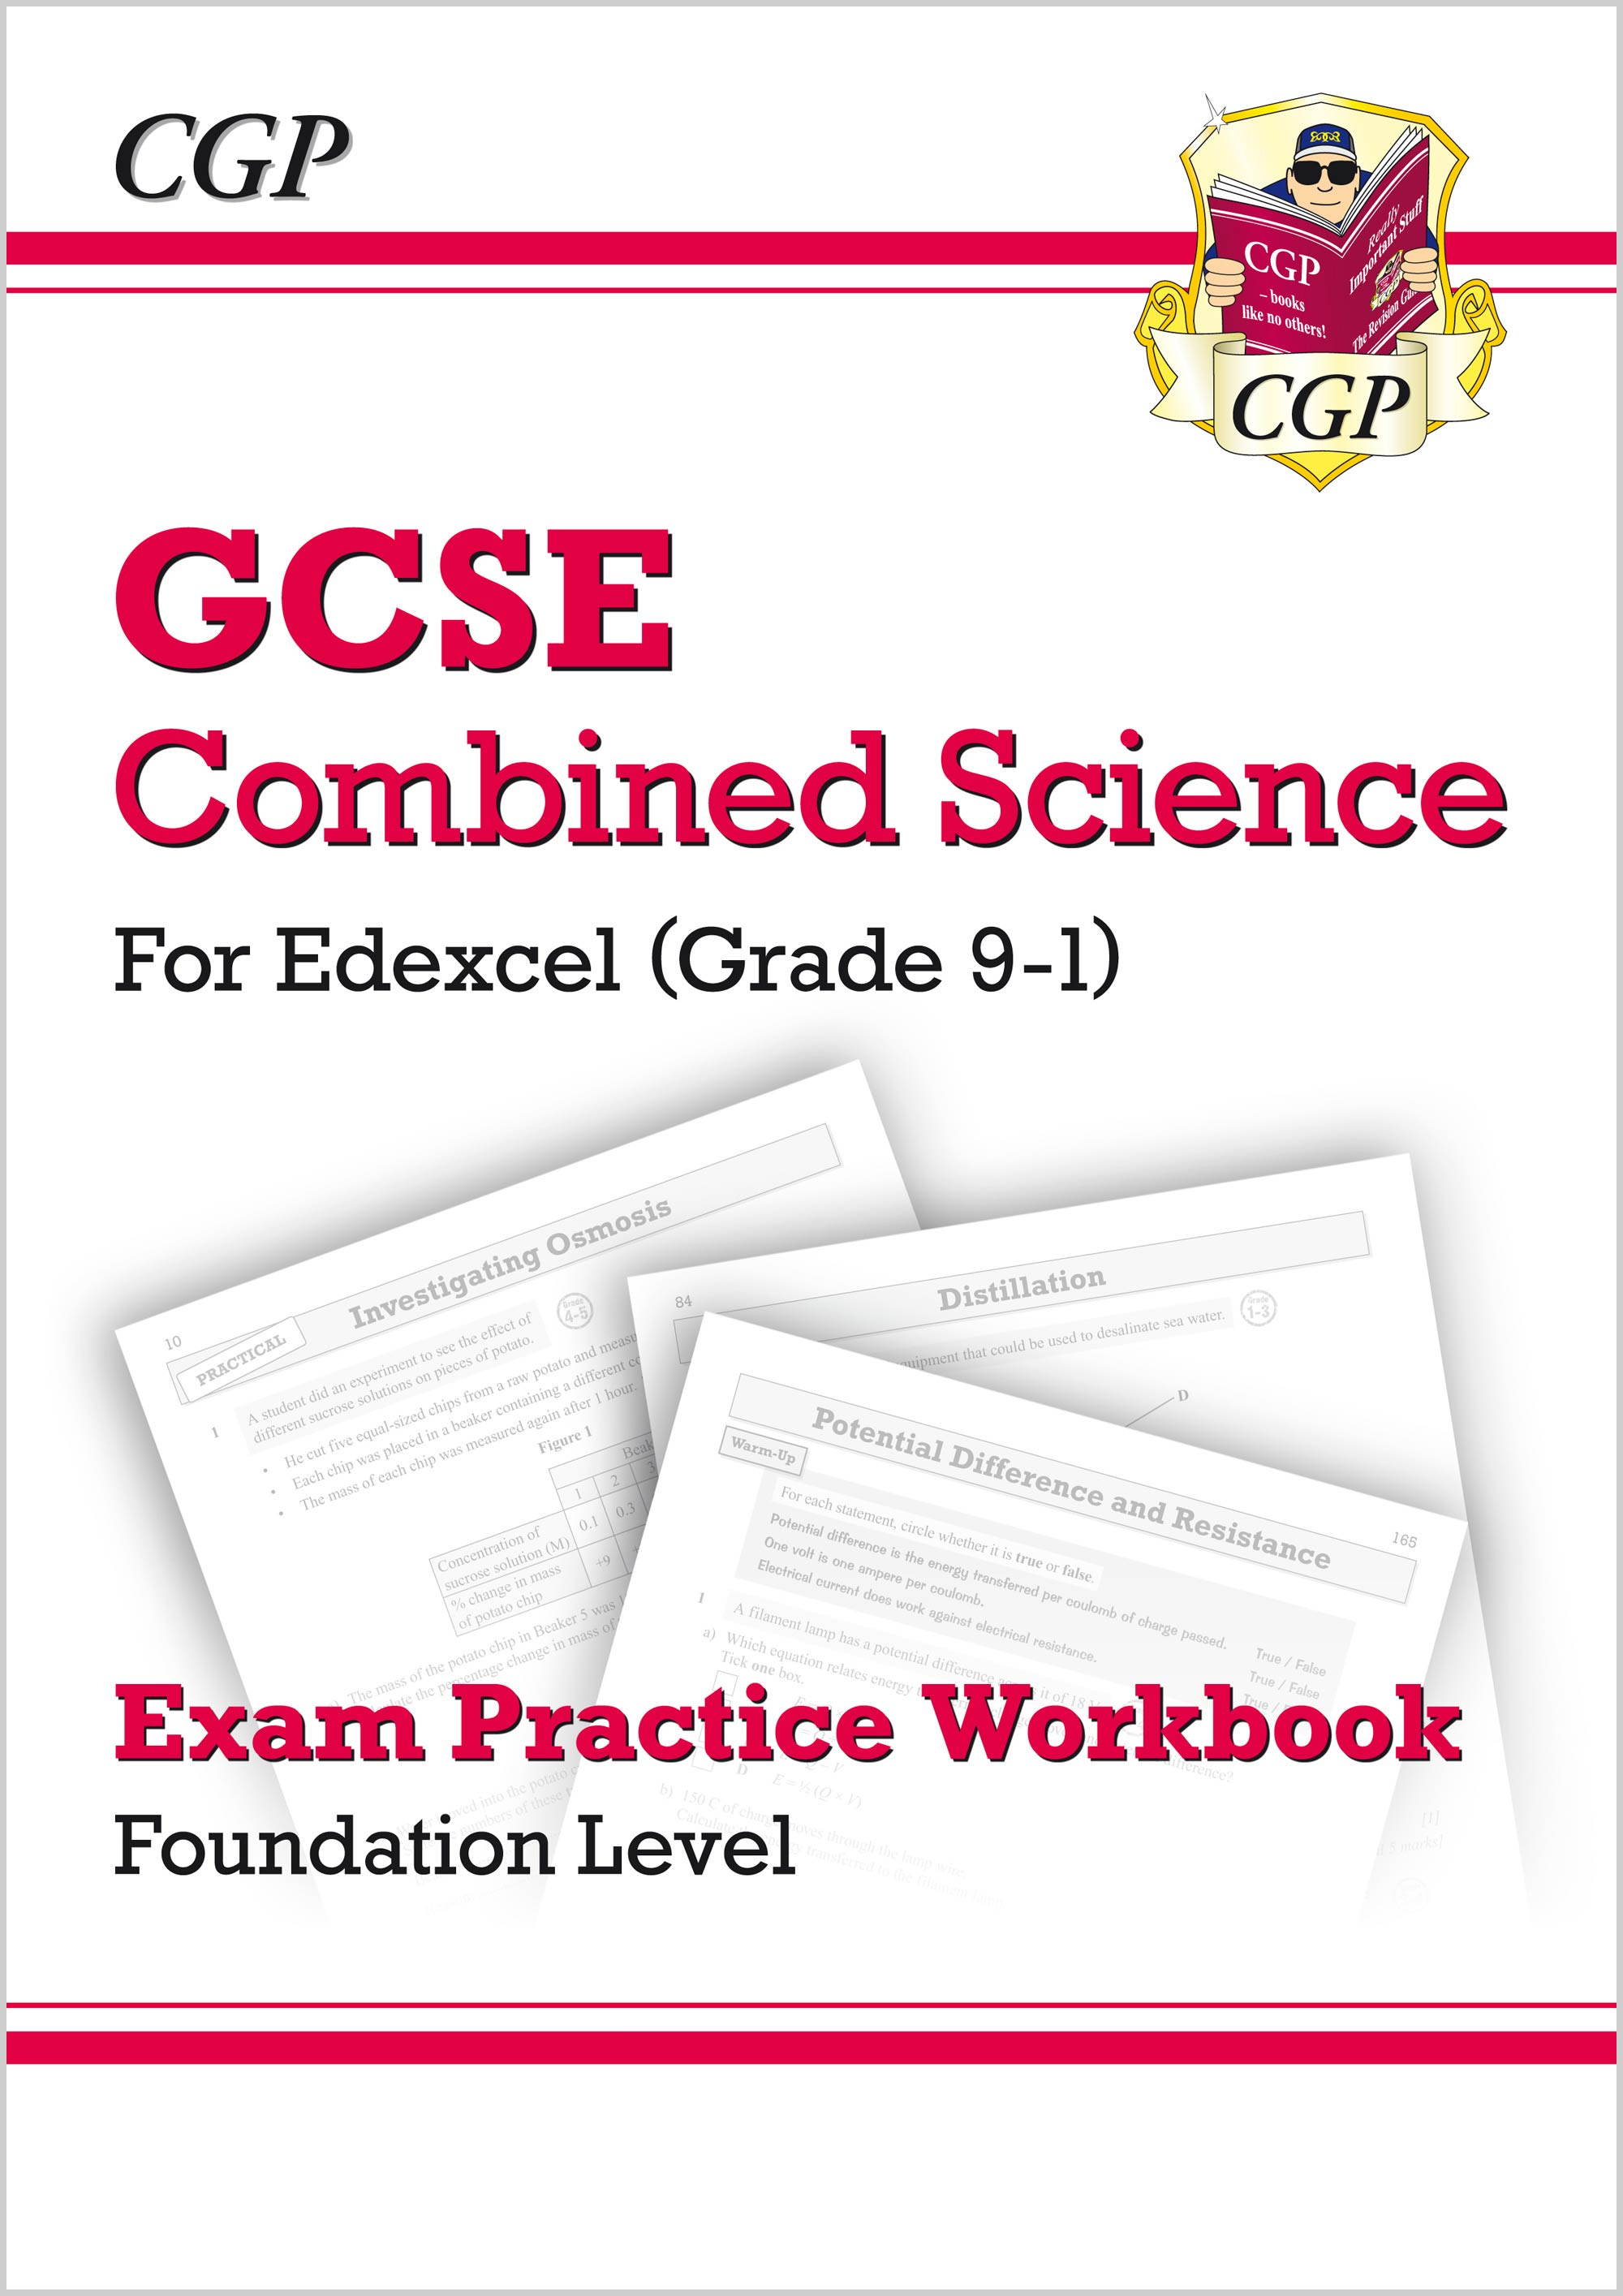 SEFQ41 - New Grade 9-1 GCSE Combined Science: Edexcel Exam Practice Workbook - Foundation